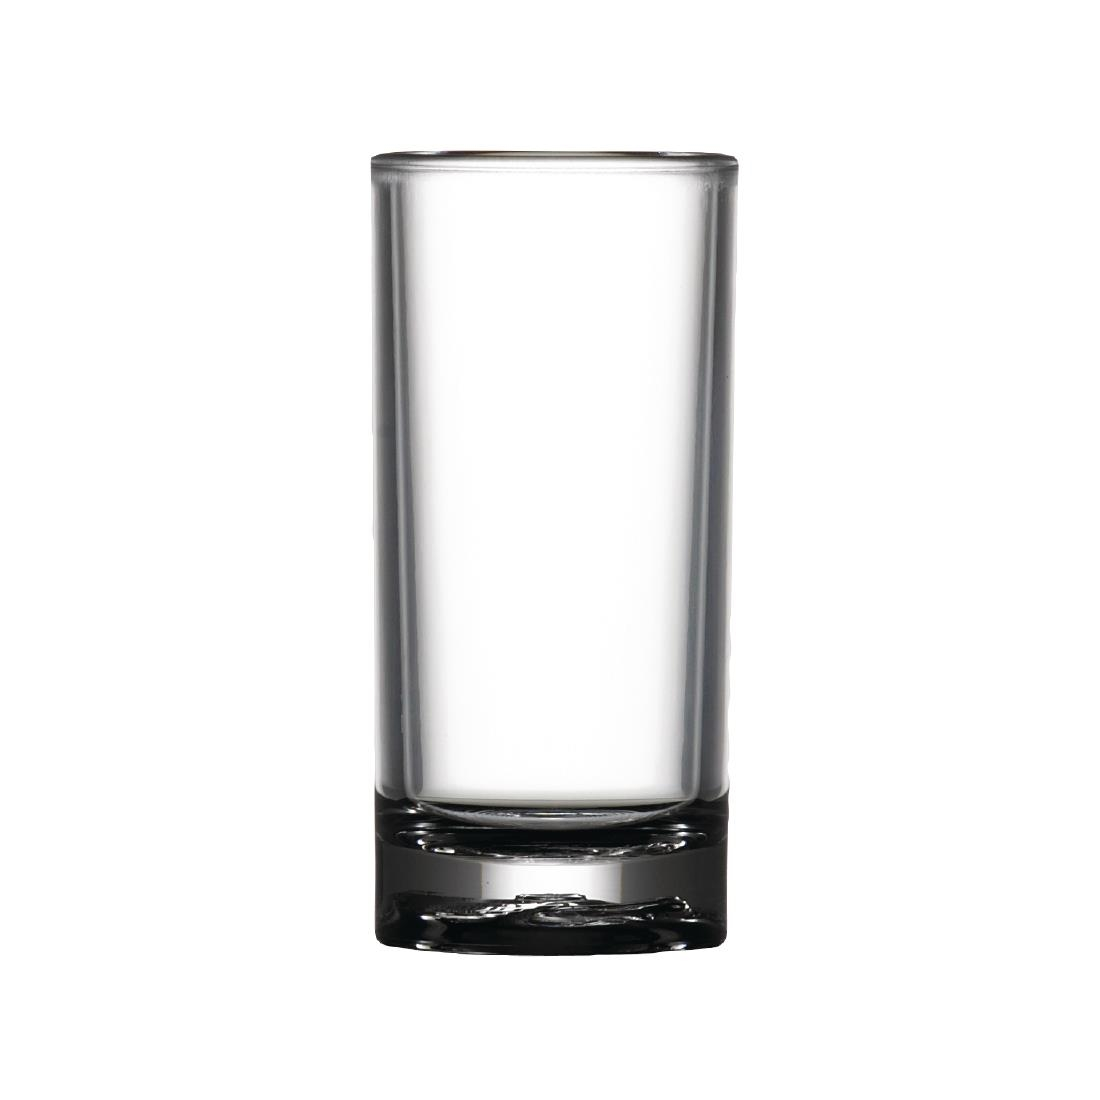 Image of BBP Polycarbonate Elite CE Shot Glass 50ml (Pack of 24) Pack of 24